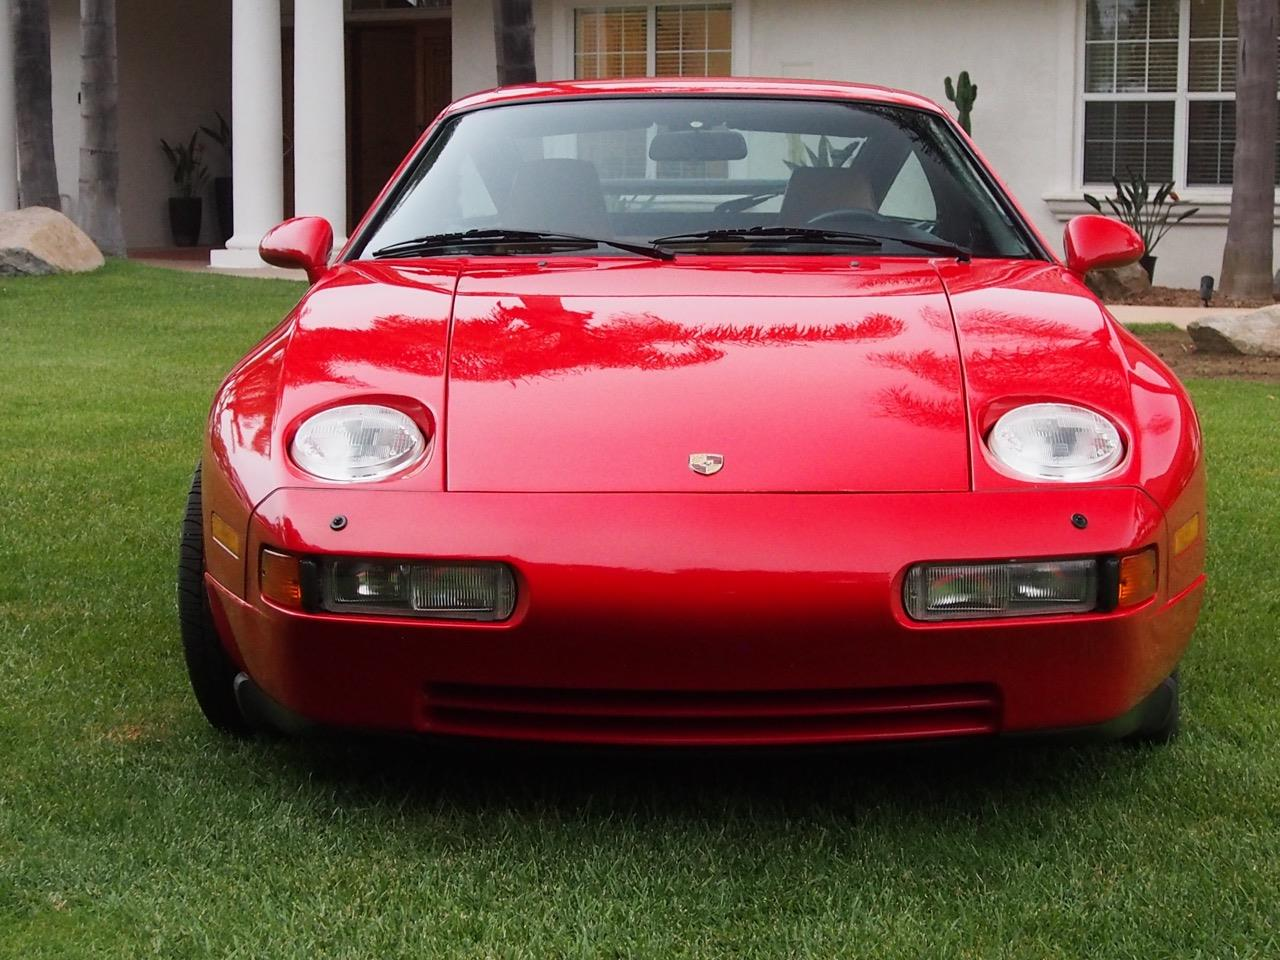 1988 Porsche 928 for sale in Carlsbad, CA